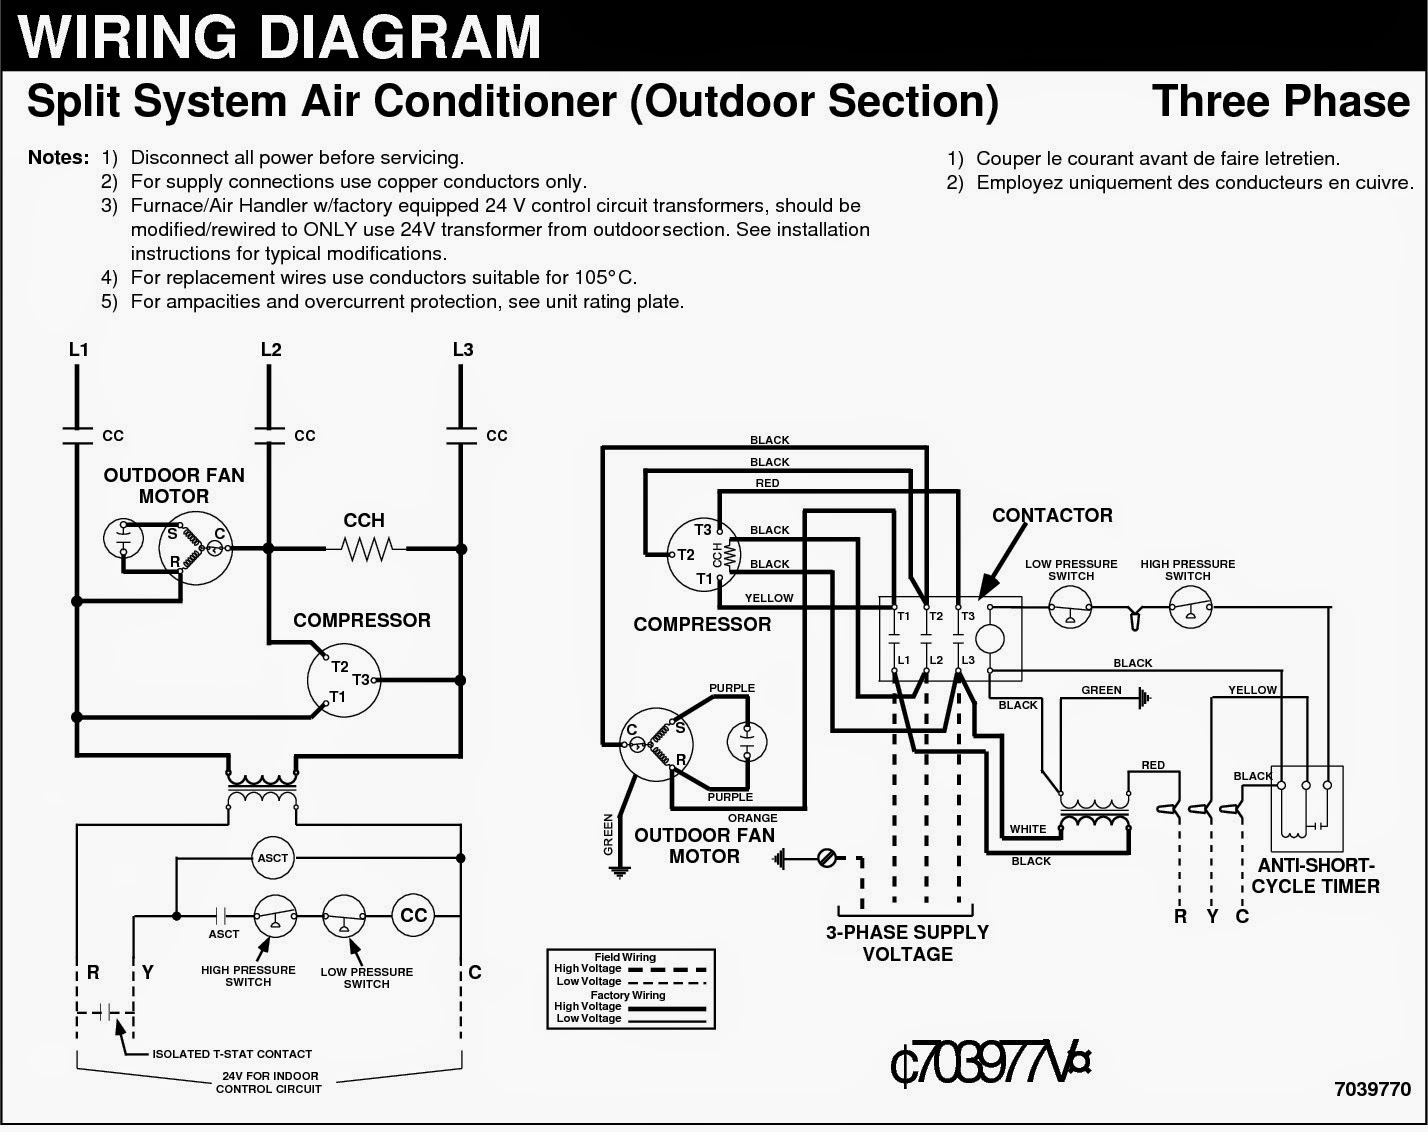 electrical wiring diagrams for air conditioning systems part two rh electrical knowhow com outdoor photocell wiring diagram outdoor socket wiring diagram